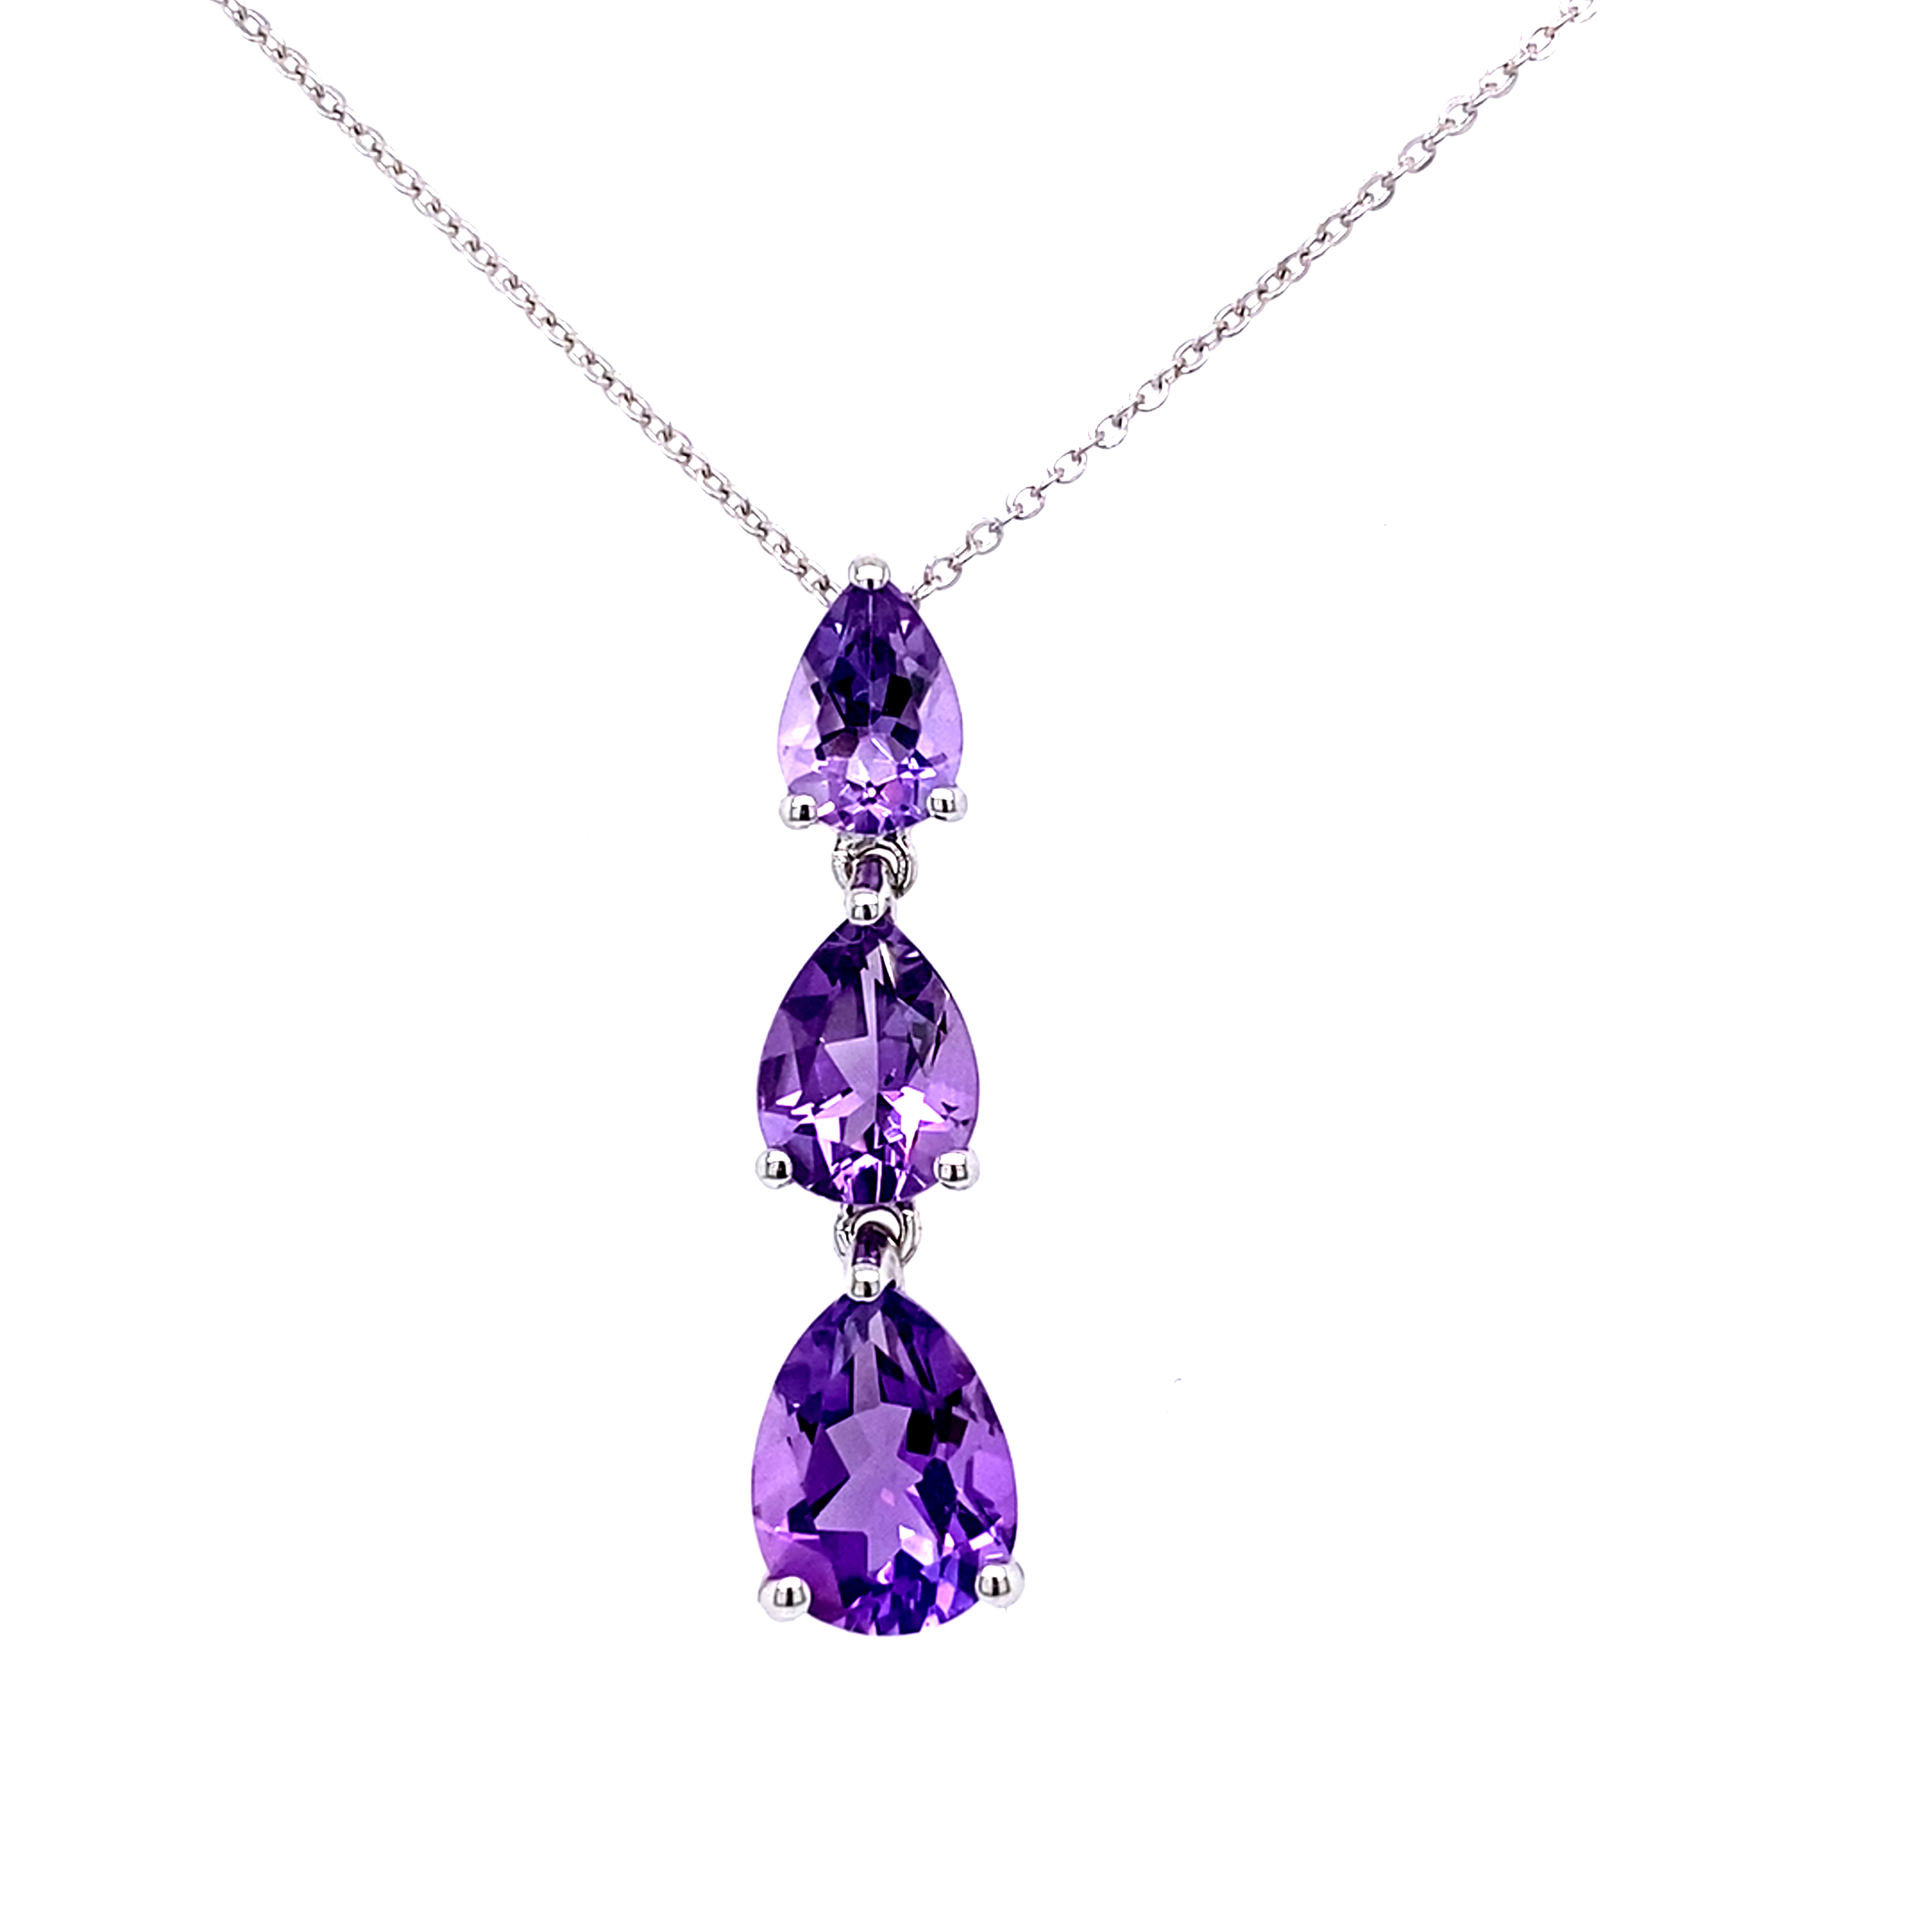 9ct white gold featuring three Amethyst pendant